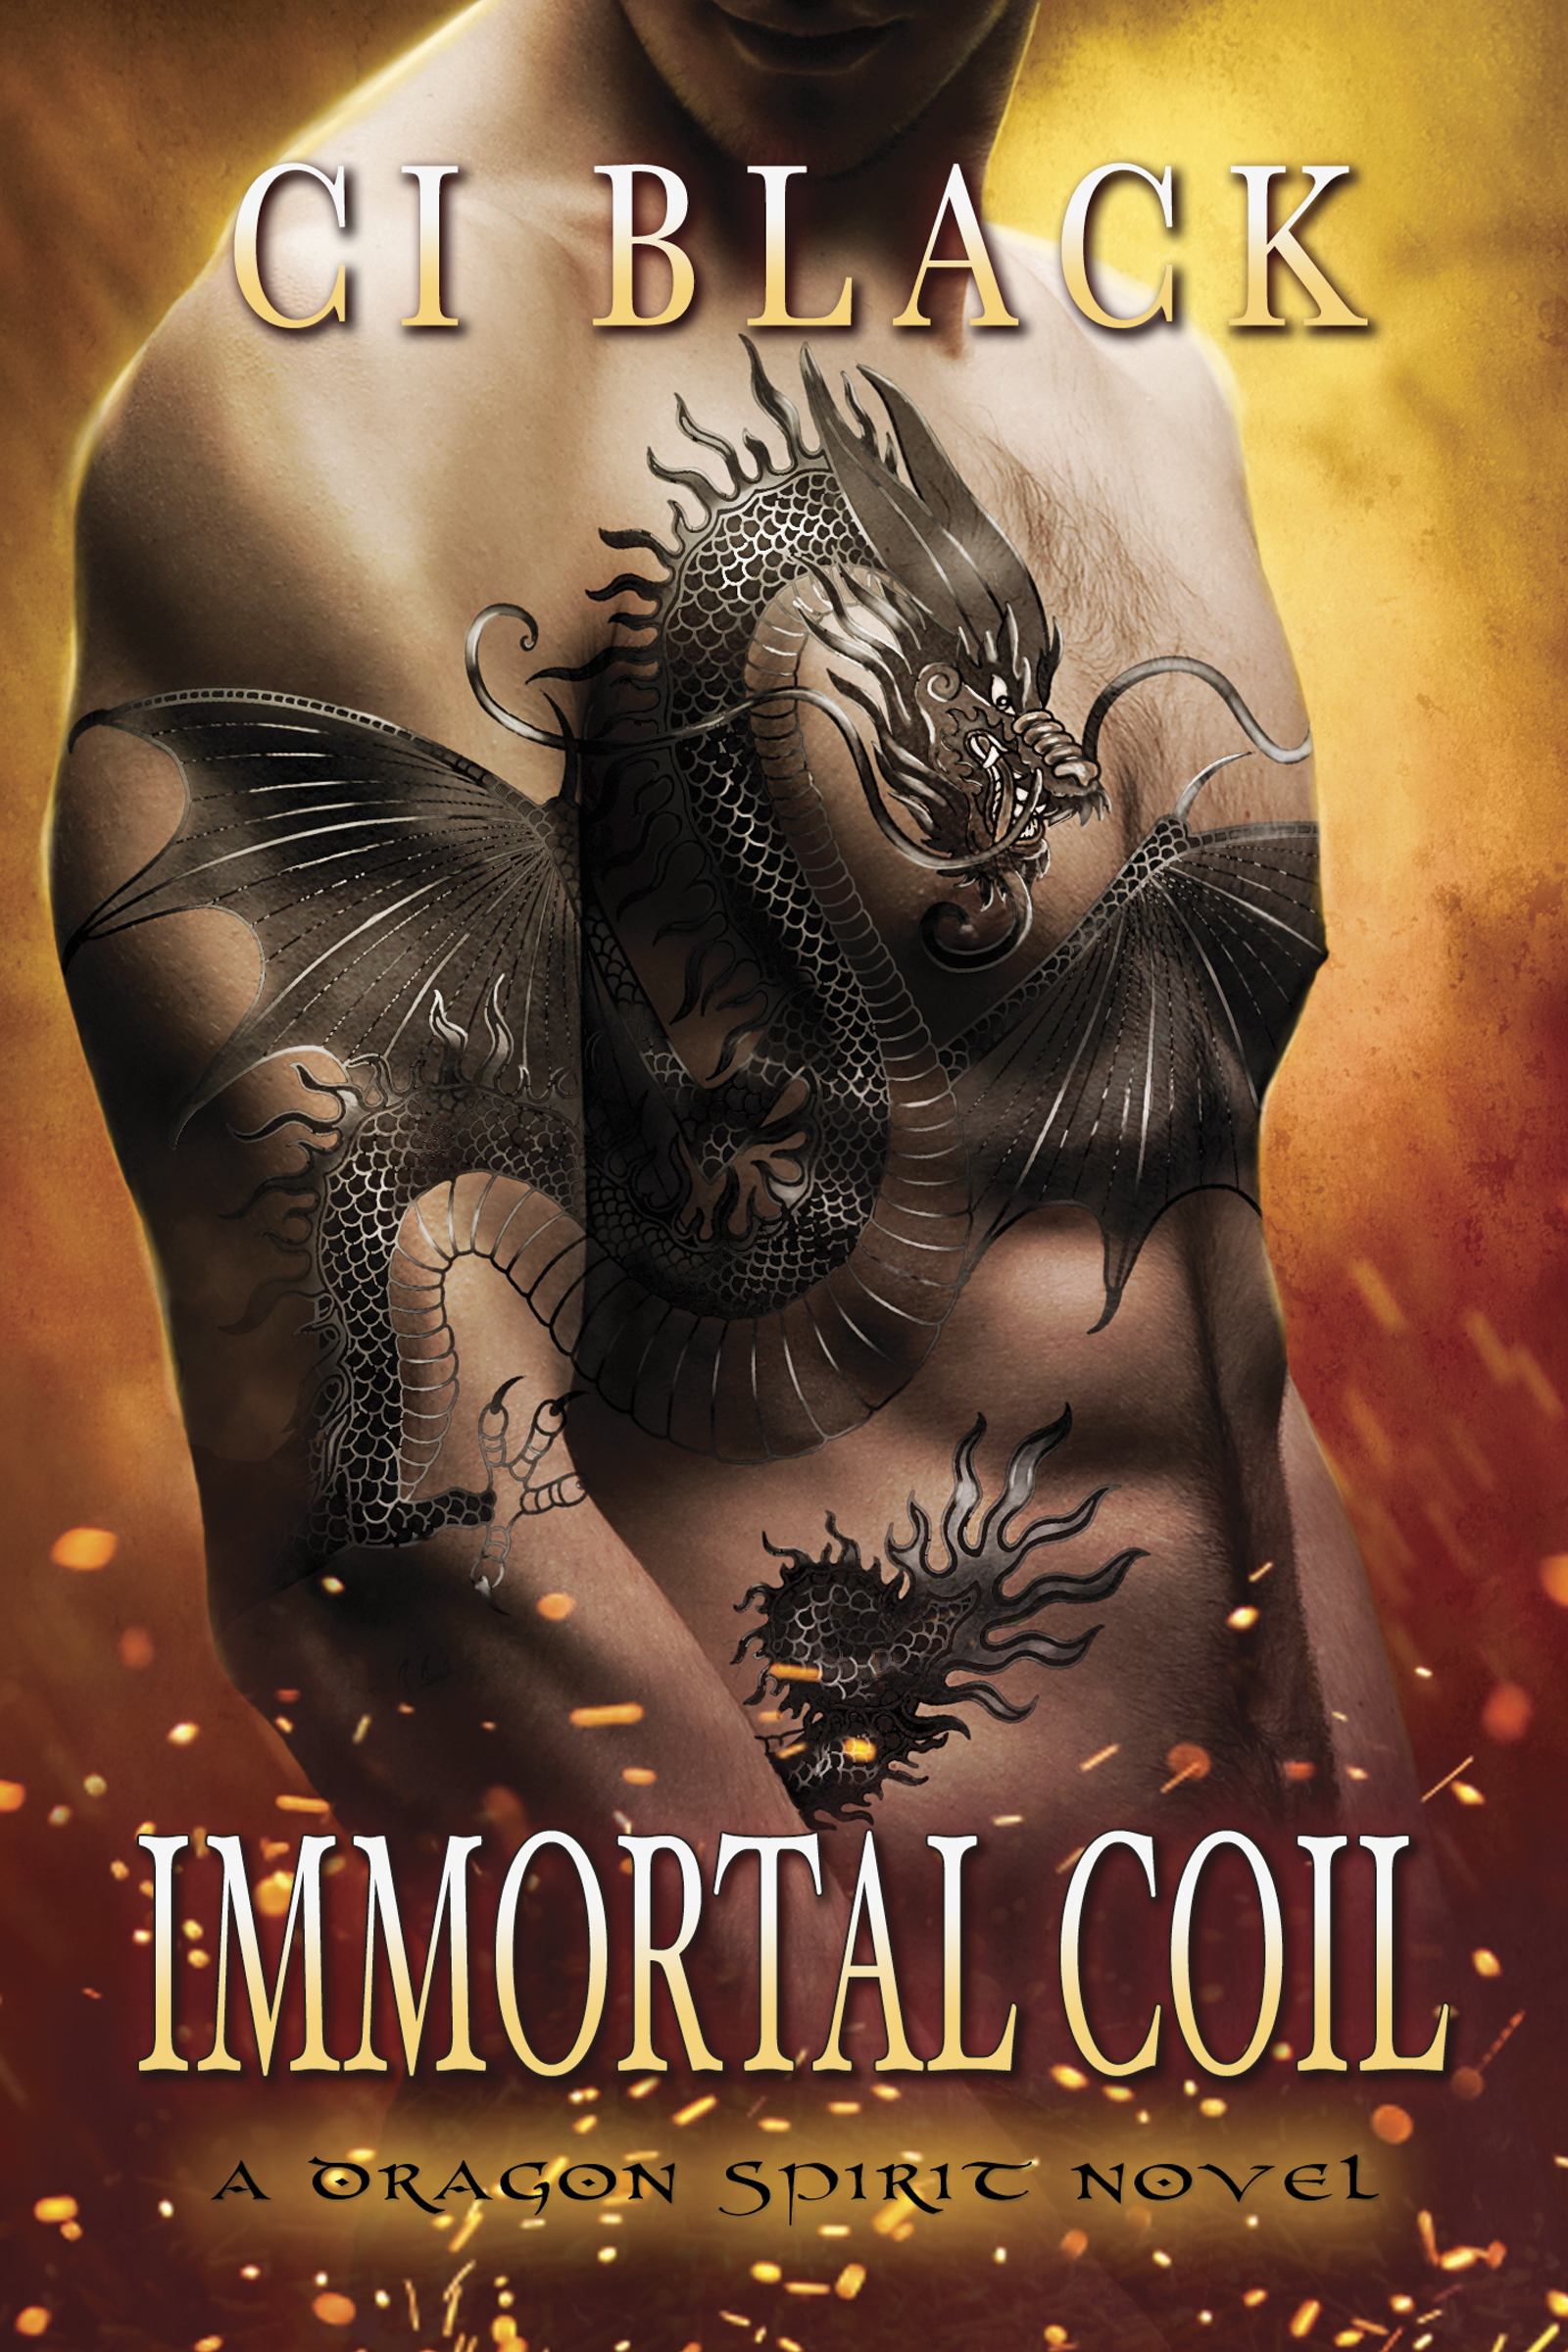 Immortal Coil, an urban fantasy / paranormal romance and the first book in the Dragon Spirit series by C.I. Black